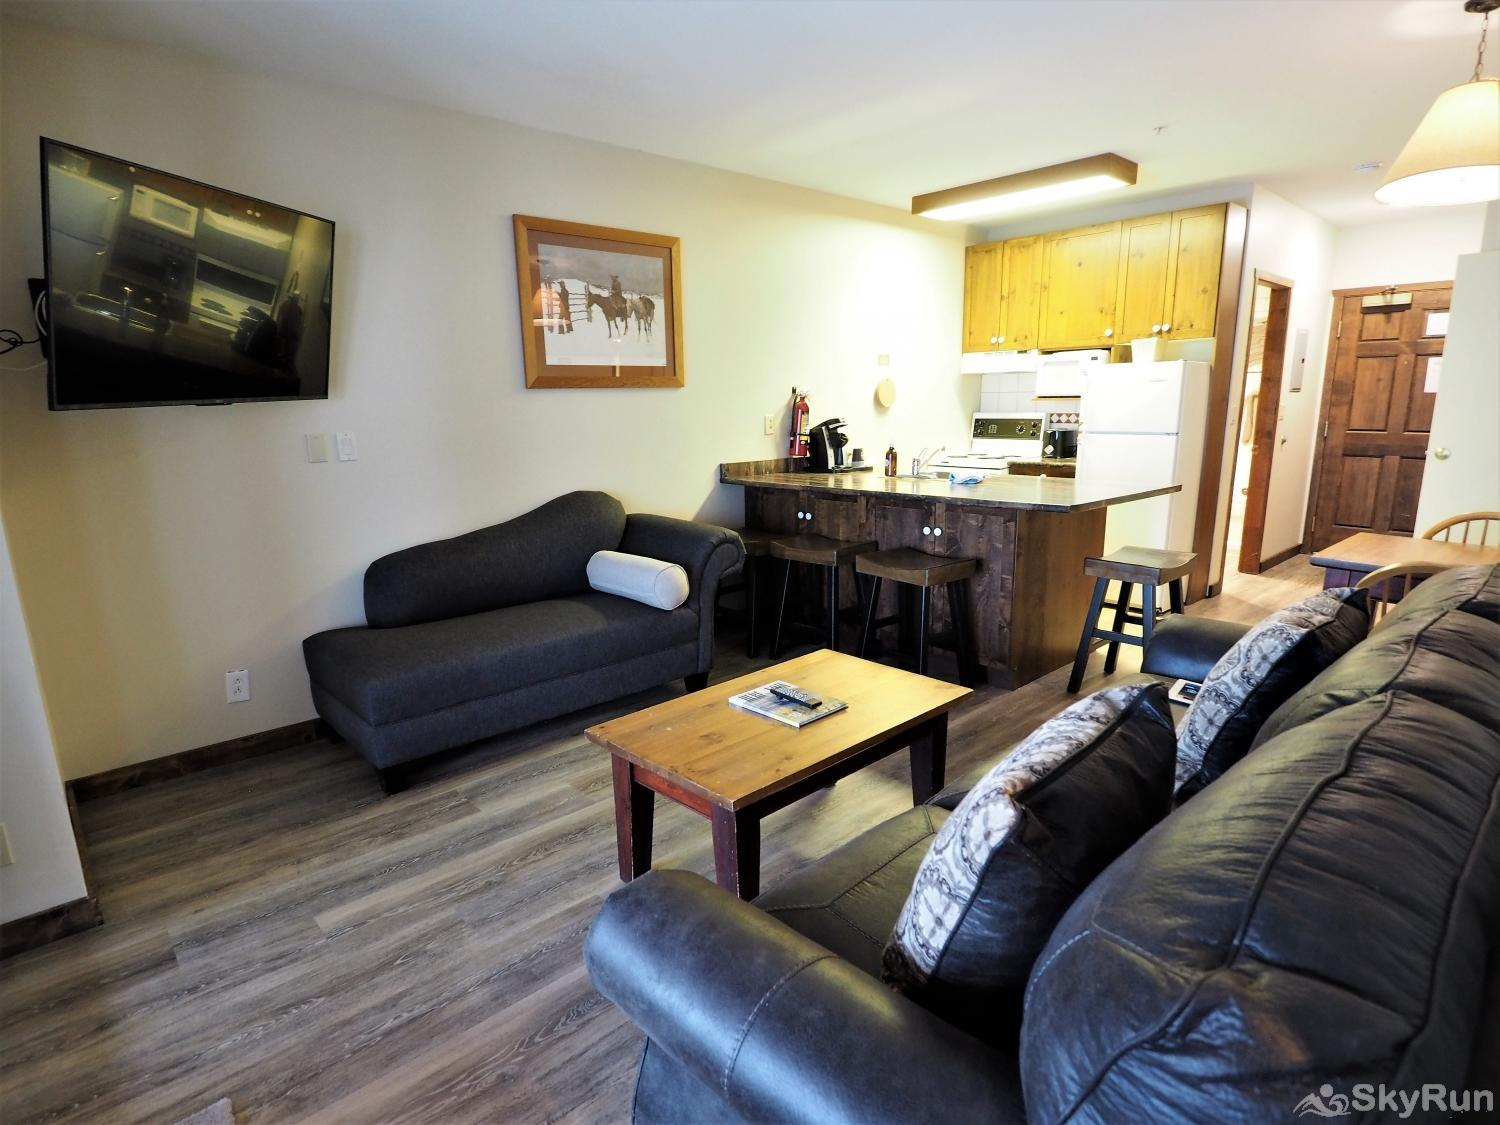 Apex Mountain Inn 2 BDRM Suite 101-102 This beautiful renovation creates an open kitchen/dining area to relax after a day on the mountain